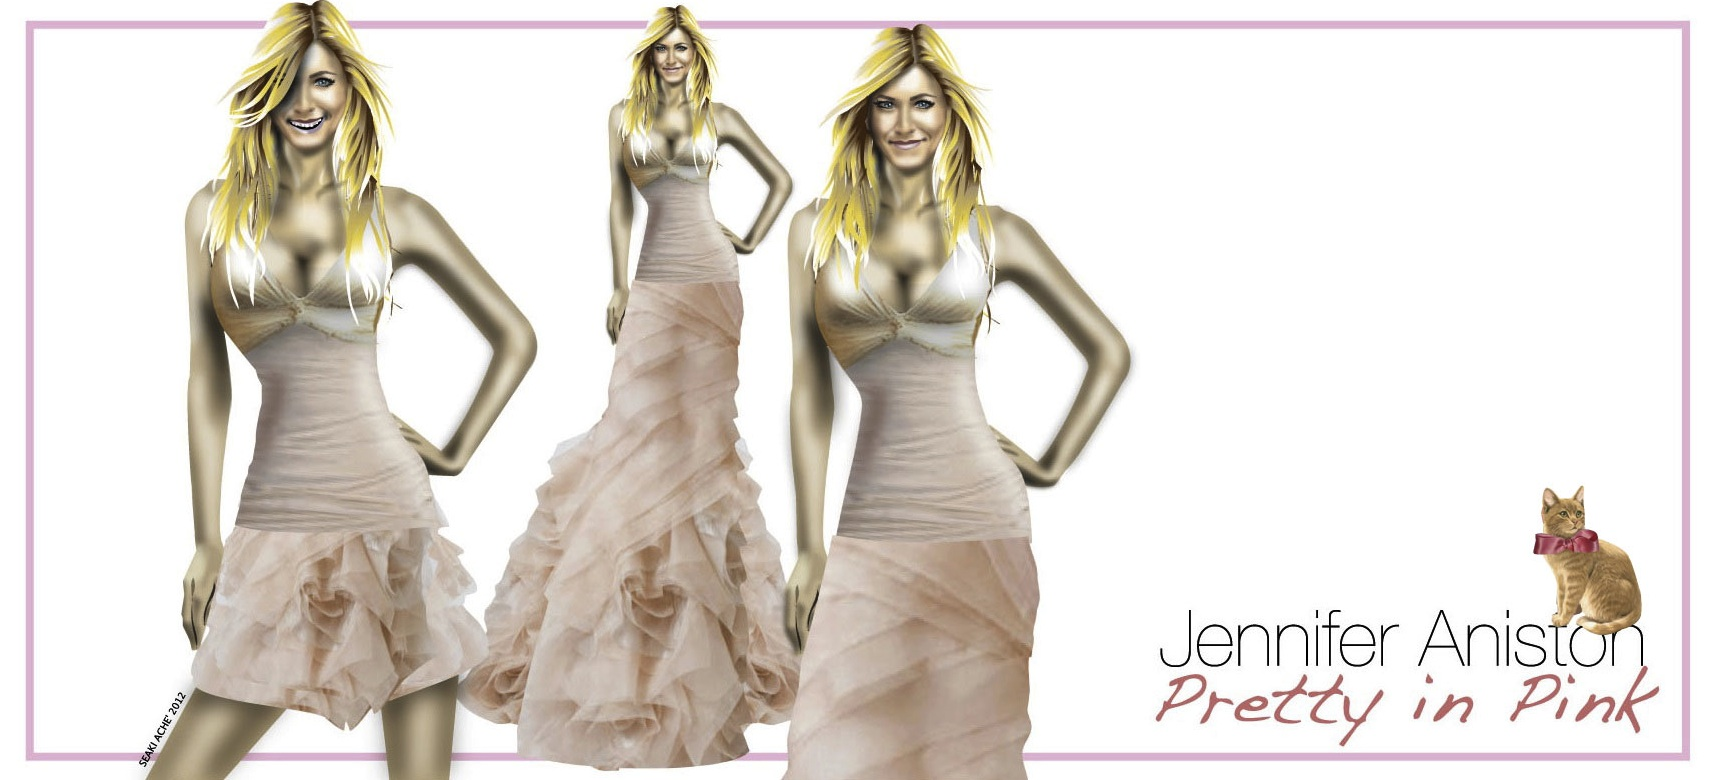 Jennifer Aniston Is Engaged / Wedding Dress Design – Lesson In ...